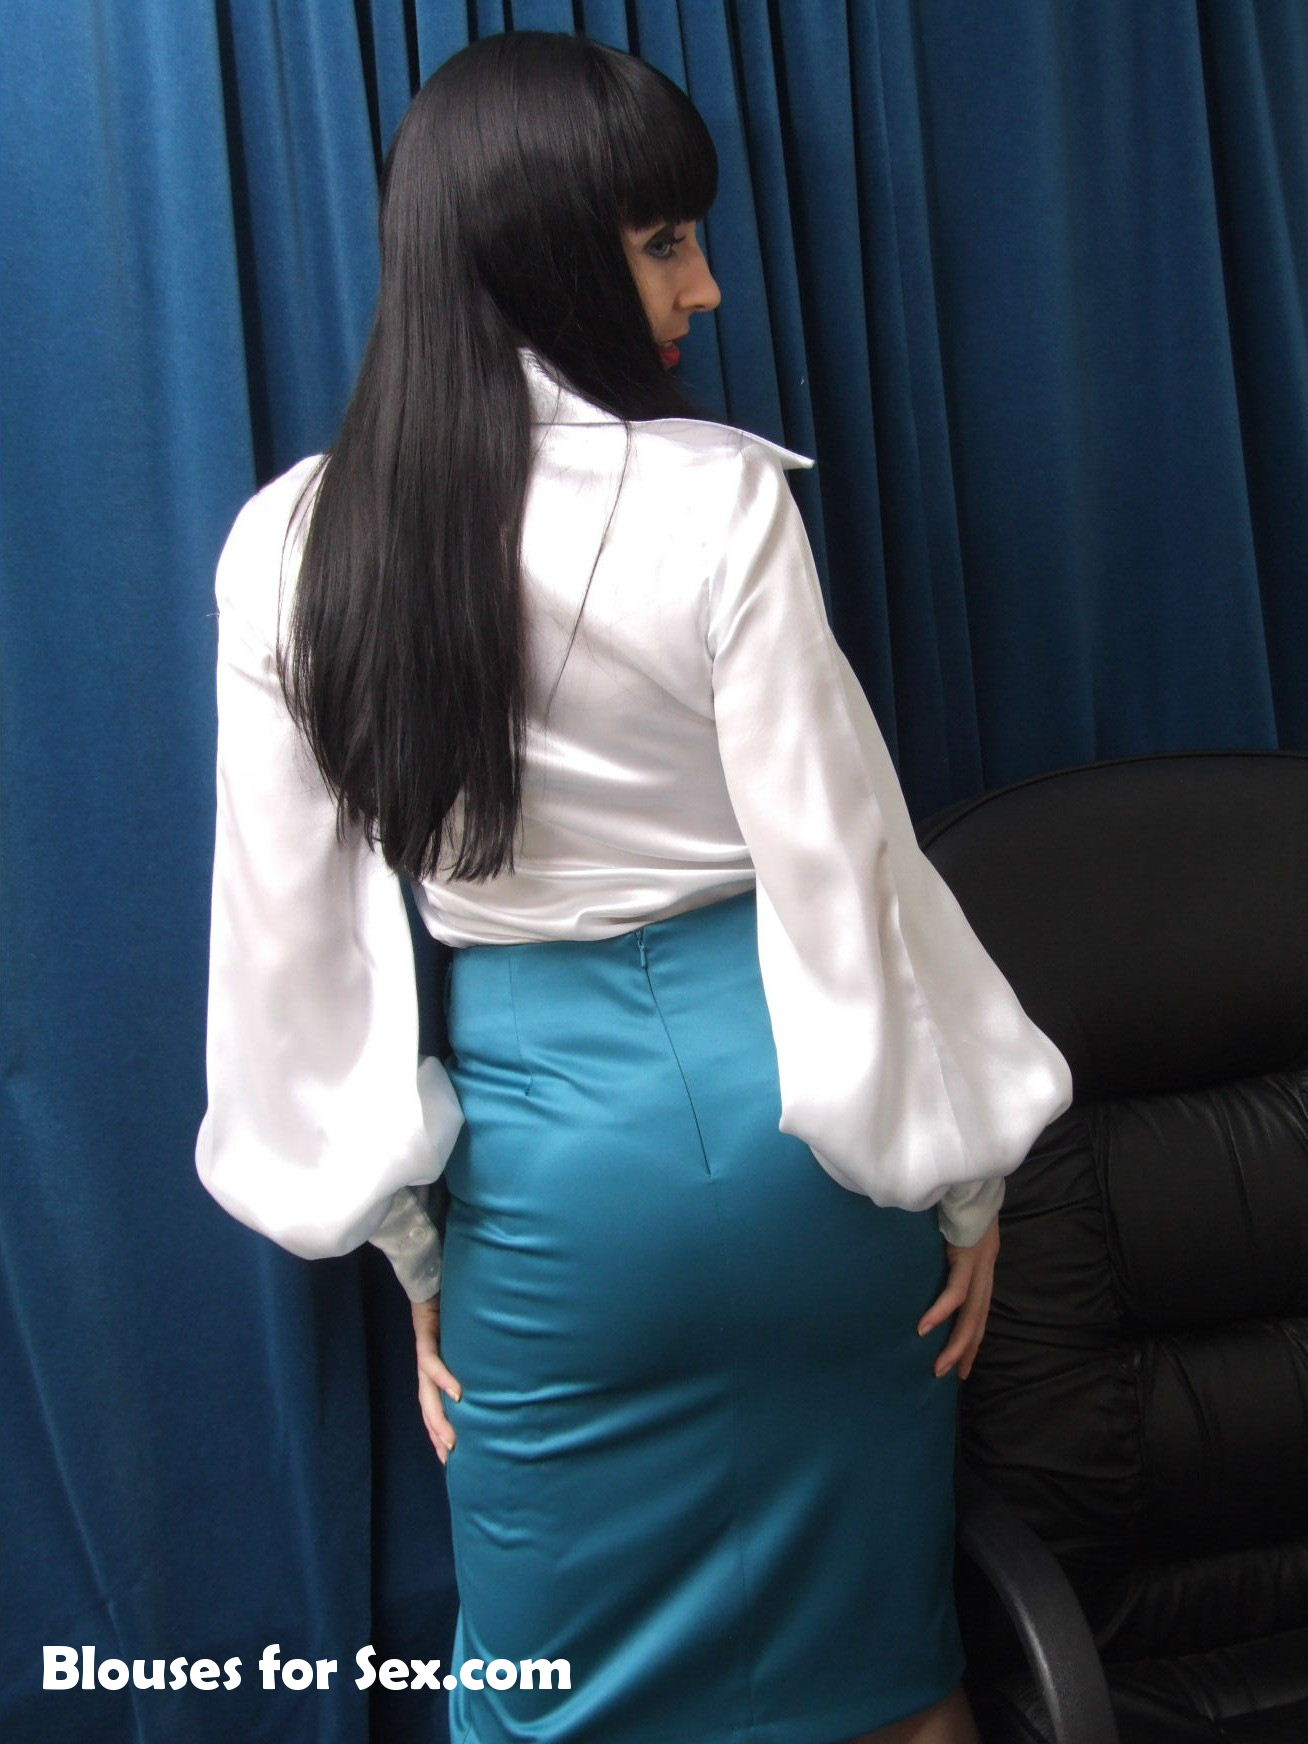 Satin and Stockings 1